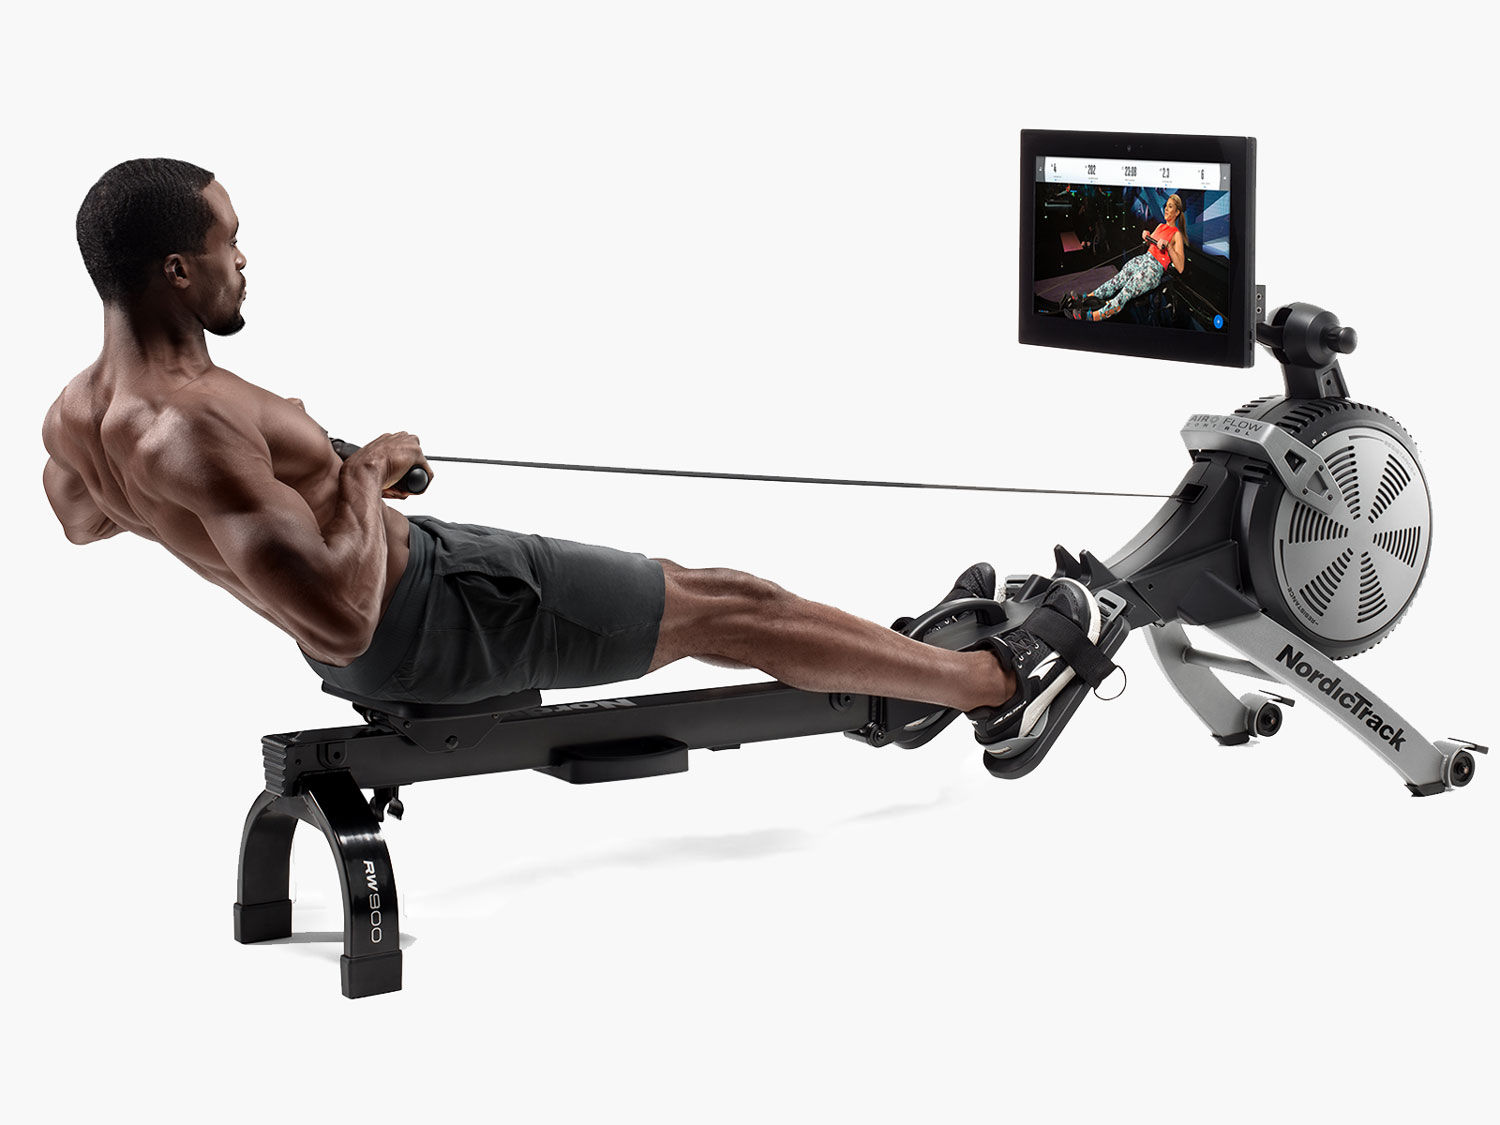 RW900 INDOOR ROWER - To see All Rowers Click Here